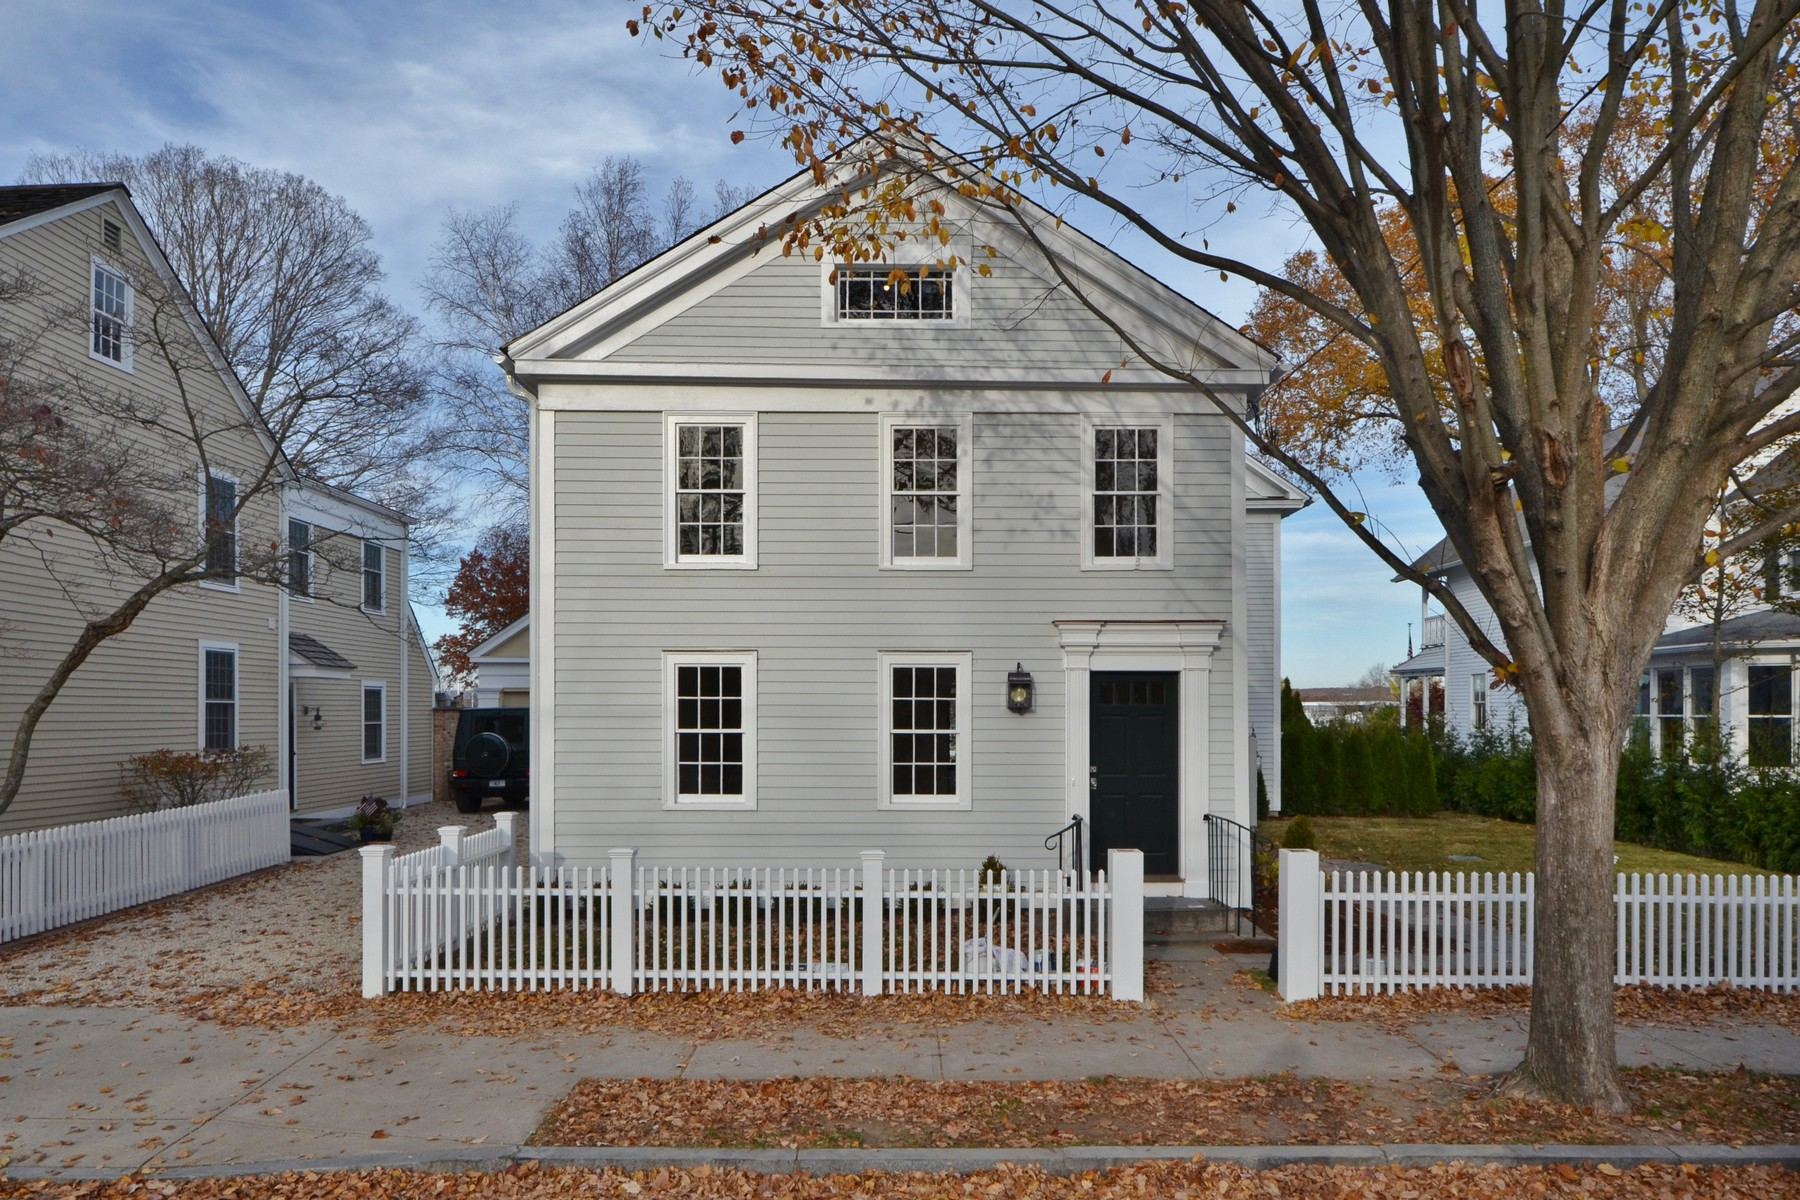 Single Family Home for Sale at Totally Restored ca.1803 Village Colonial With North Cove Views 39 Main St Essex, Connecticut 06426 United States